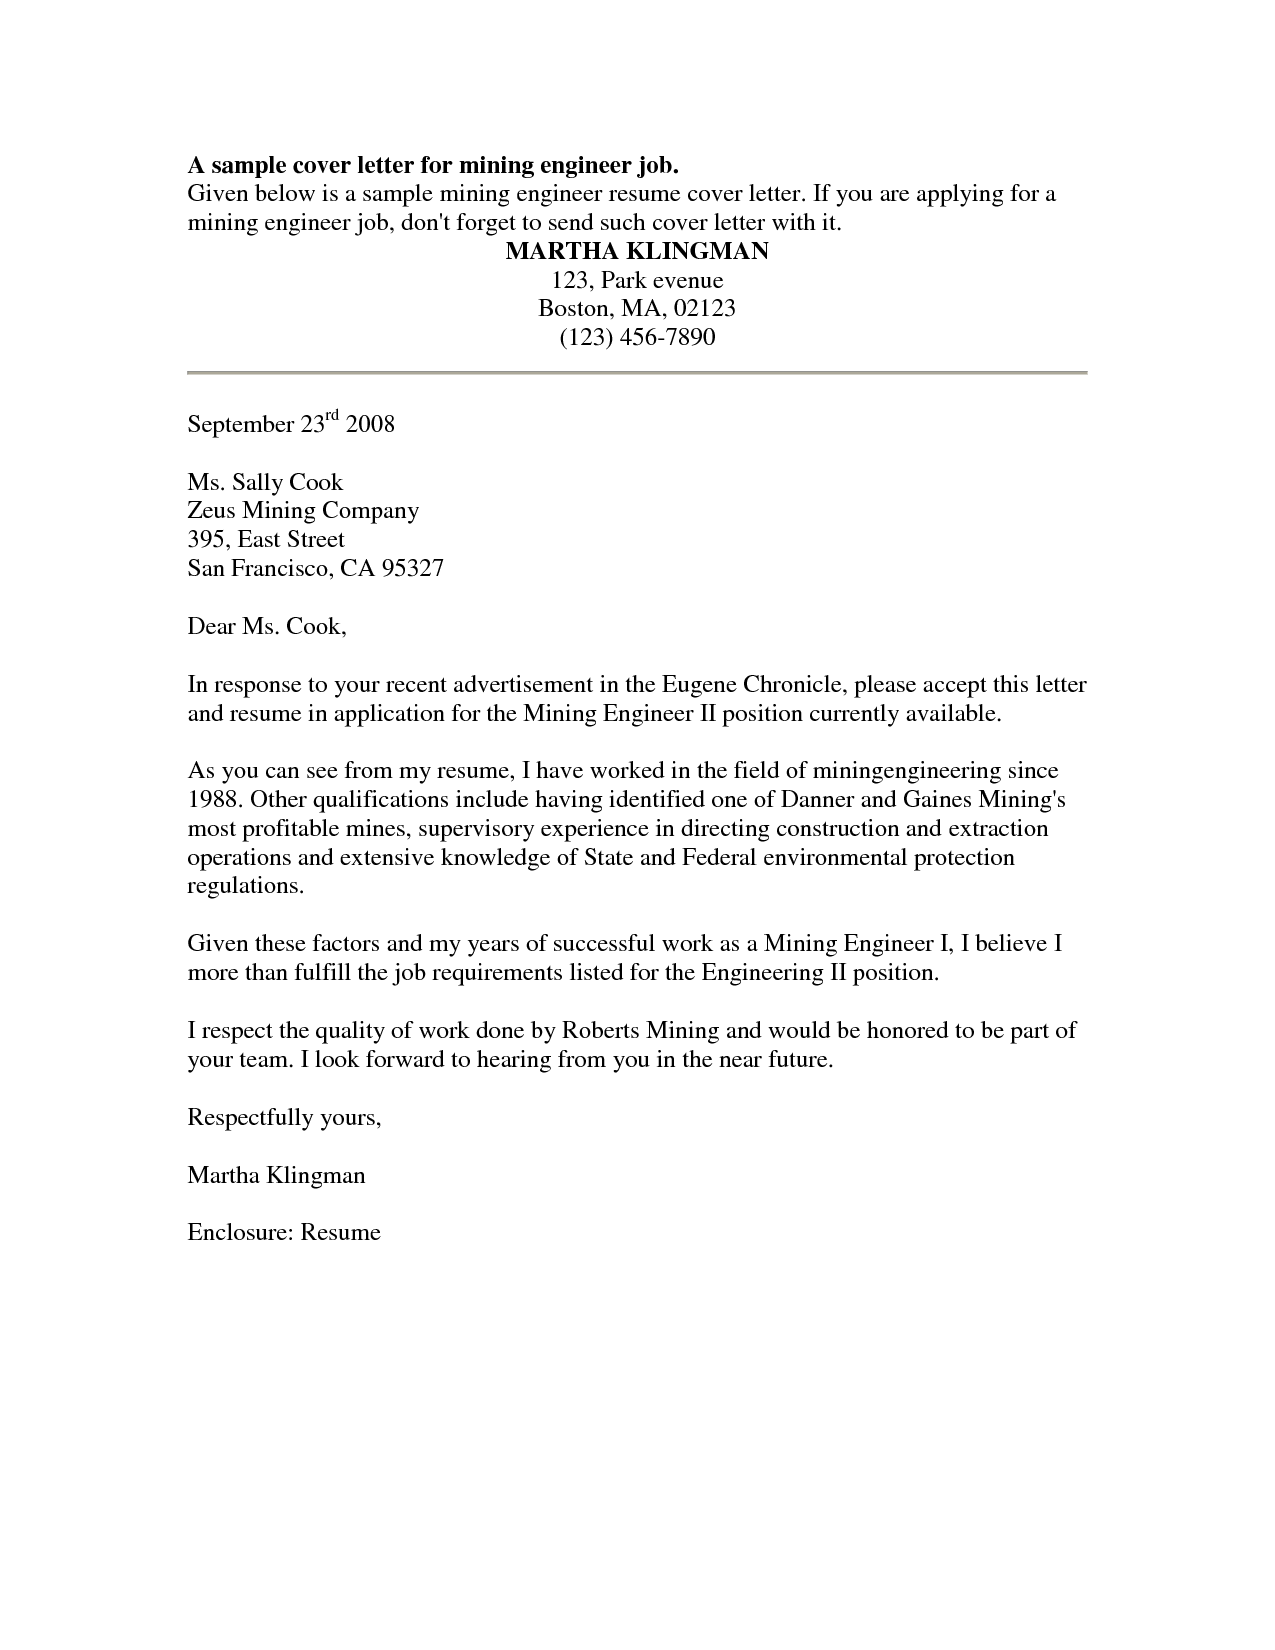 Sample Cover Letter For Resume Cover Letter Sample Free Sample Job Cover Letter For